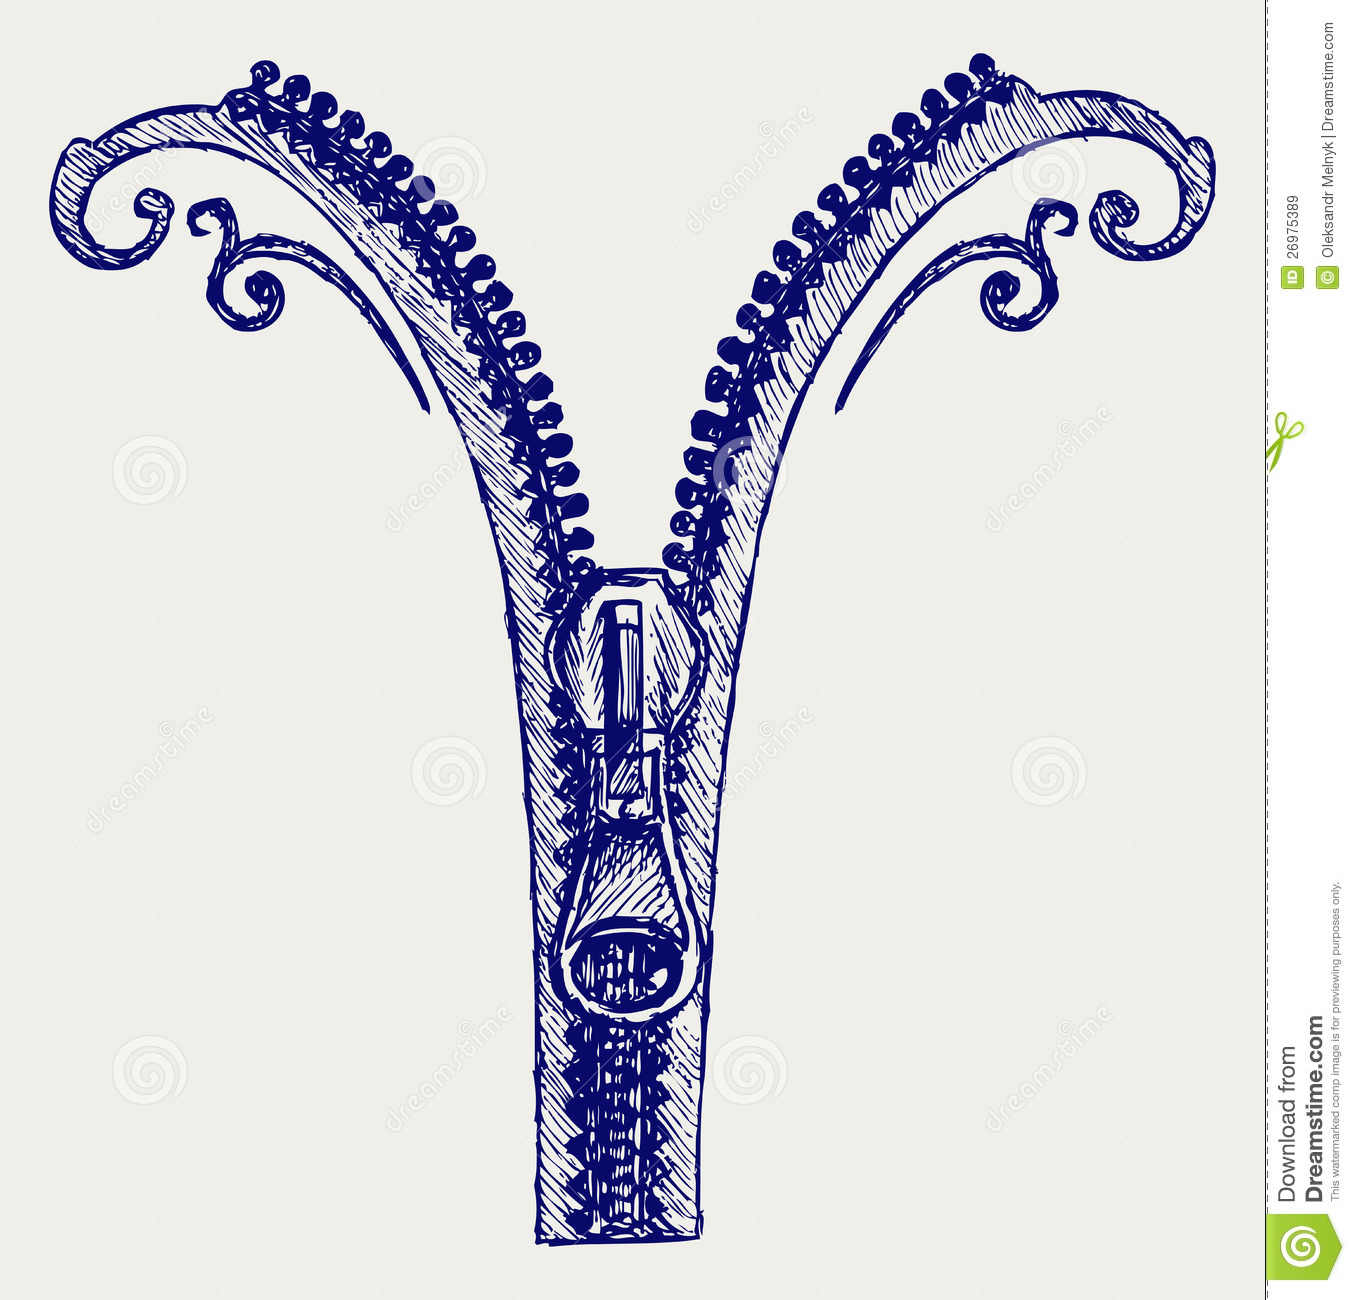 Tattoo Designs Of Zips: Zipper Sketch Royalty Free Stock Images